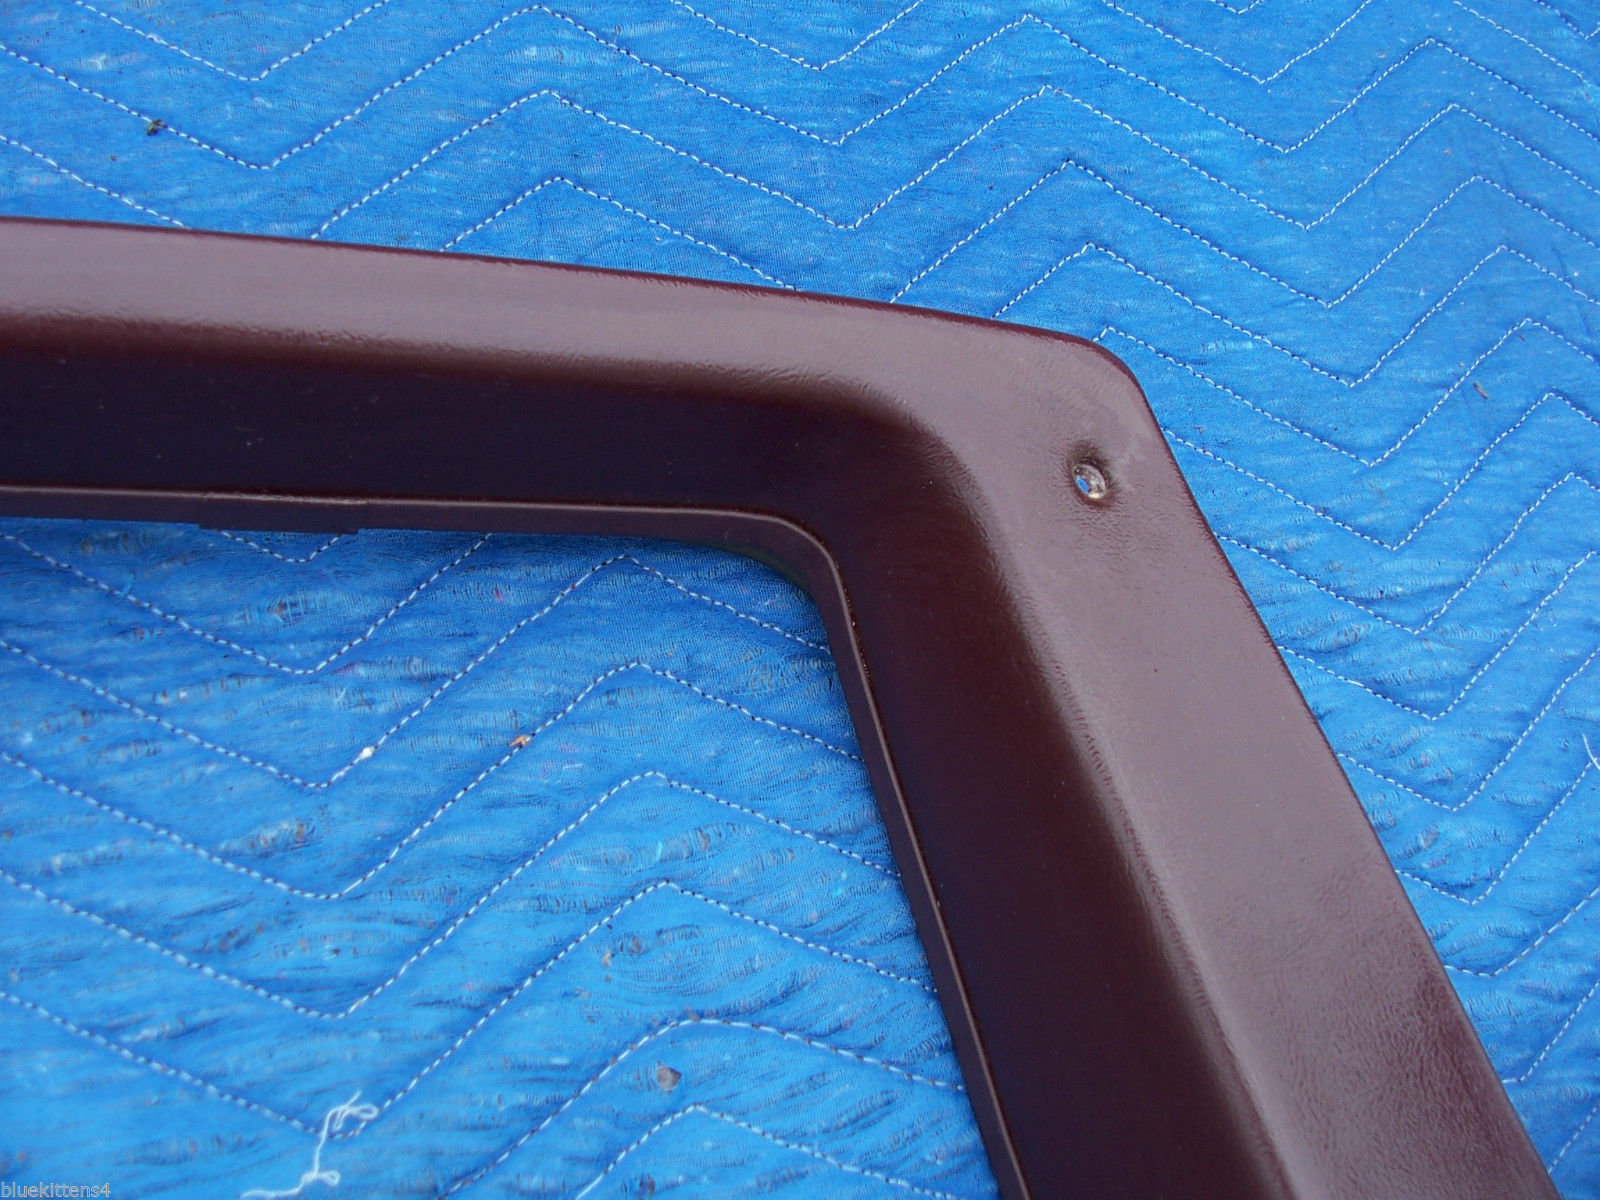 1977 COUPE DEVILLE RIGHT OPERA WINDOW TRIM PANEL OEM USED CADILLAC PART image 5